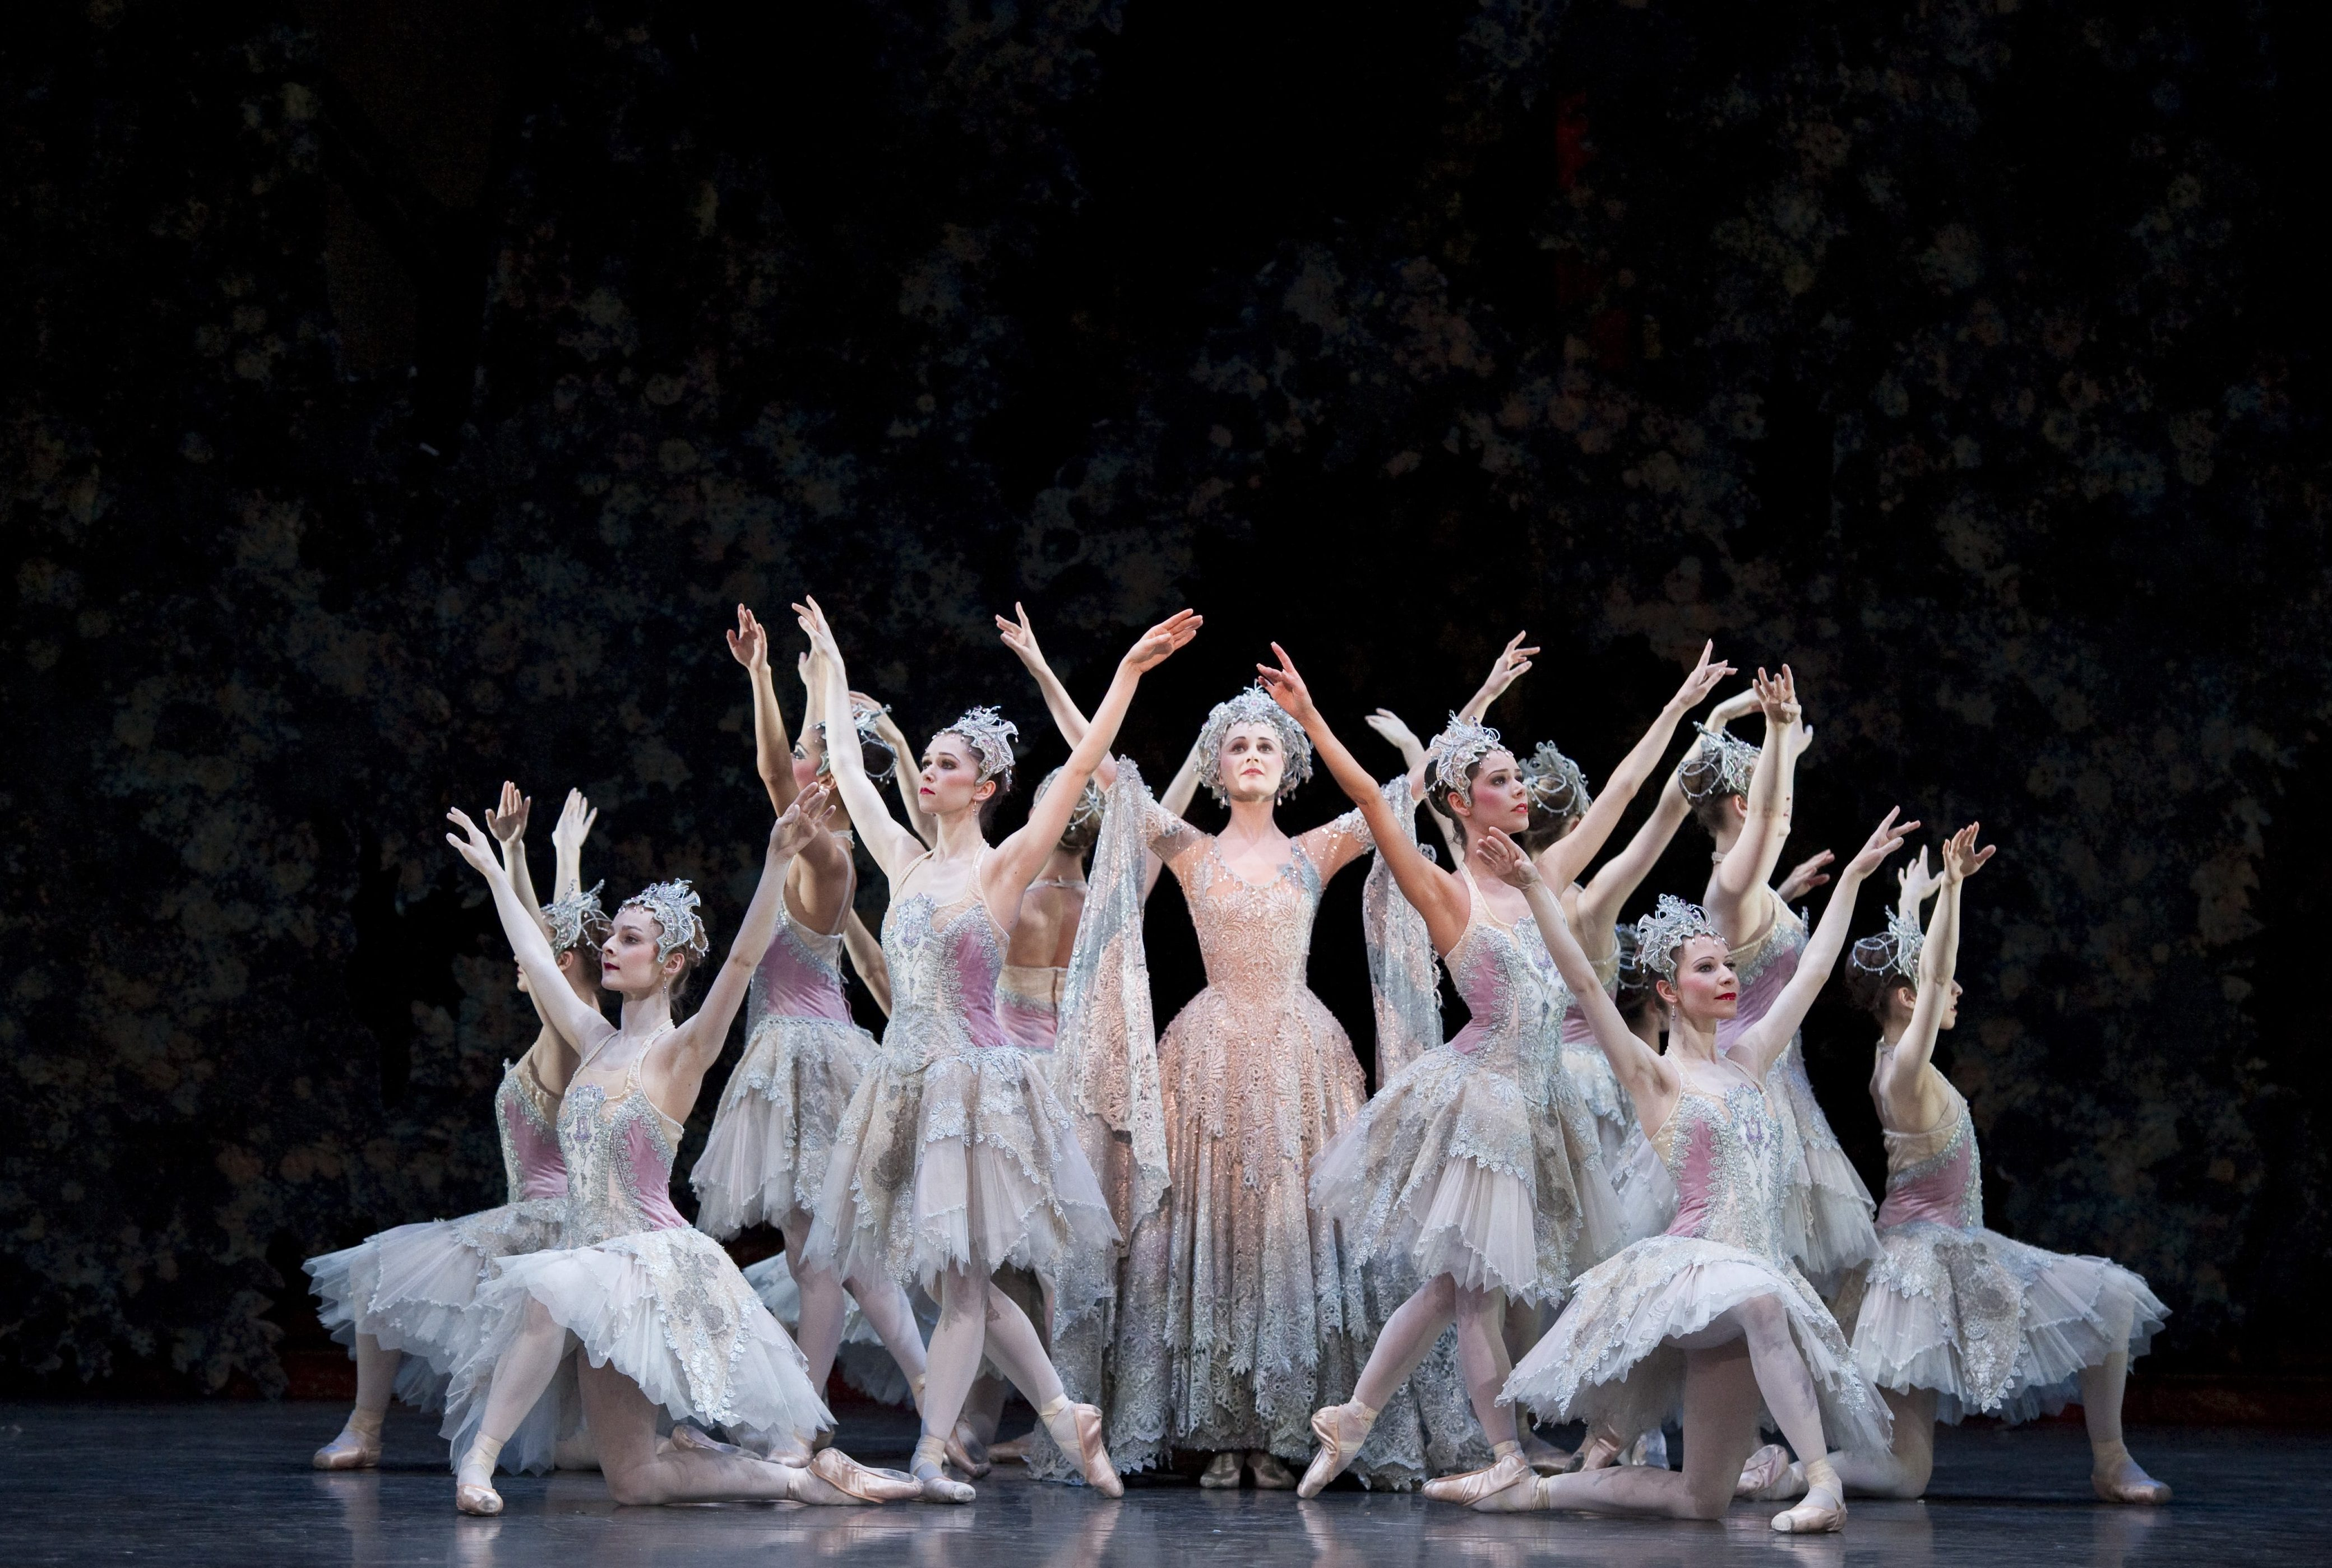 The Sleeping Beauty: Jenna Roberts as the Lilac Fairy with Artists of Birmingham Royal Ballet. Photo by Bill Cooper